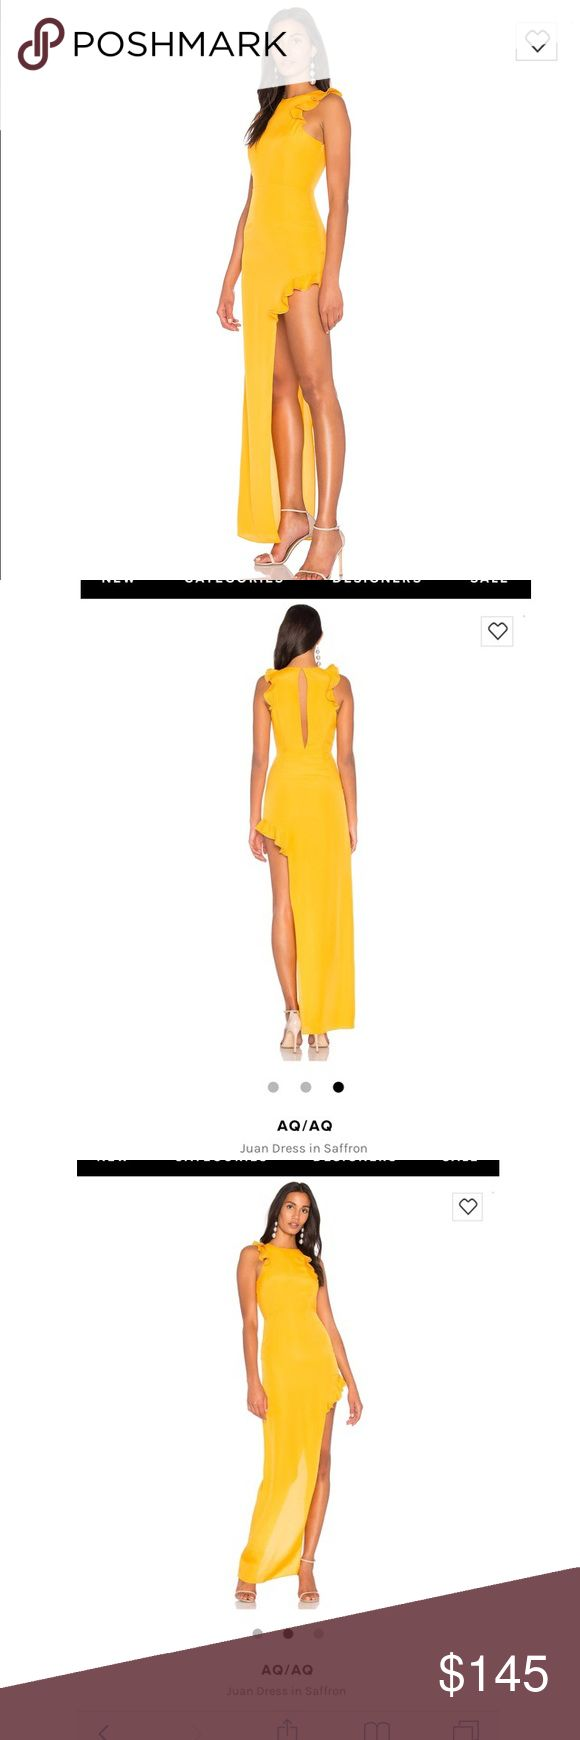 AQ/AQ Juan Dress in Saffron from Revolve Price listed on Revolves site is still at $176 (that is what I paid in October ). In perfect condition! Worn once for a wedding and is dry cleaned already. Gold color with one side being longer than the other. Size 2 .... I added a photo of me on here I'm a little over 5'1 hope this helps   If you have any questions please massage me AQ/AQ Dresses Asymmetrical